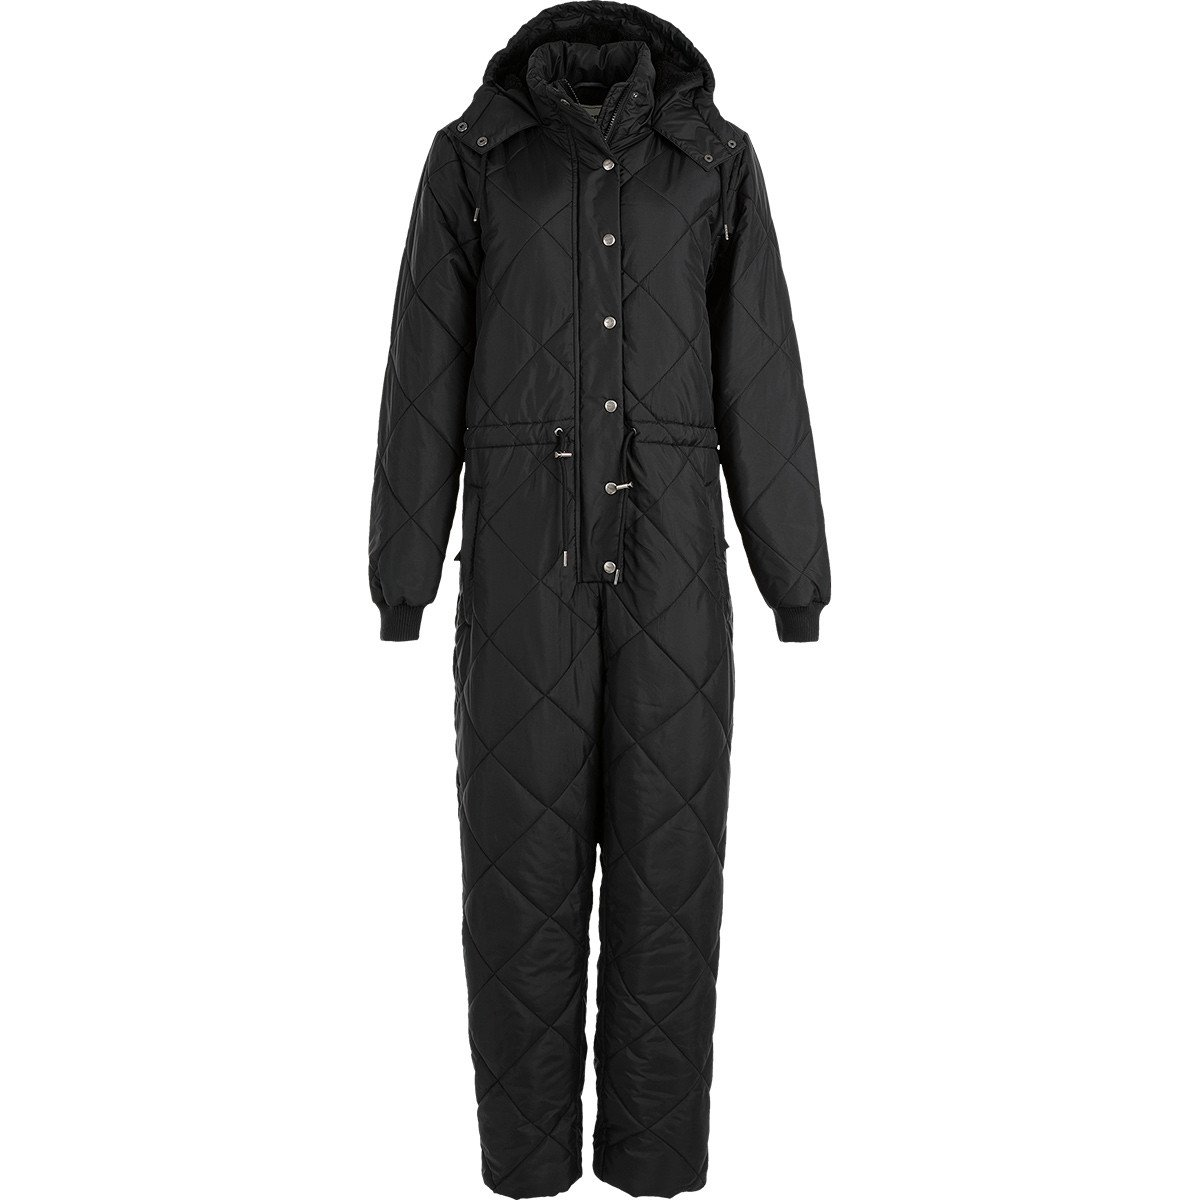 Weather Report Mina Quilted Jumpsuit Dame, sort